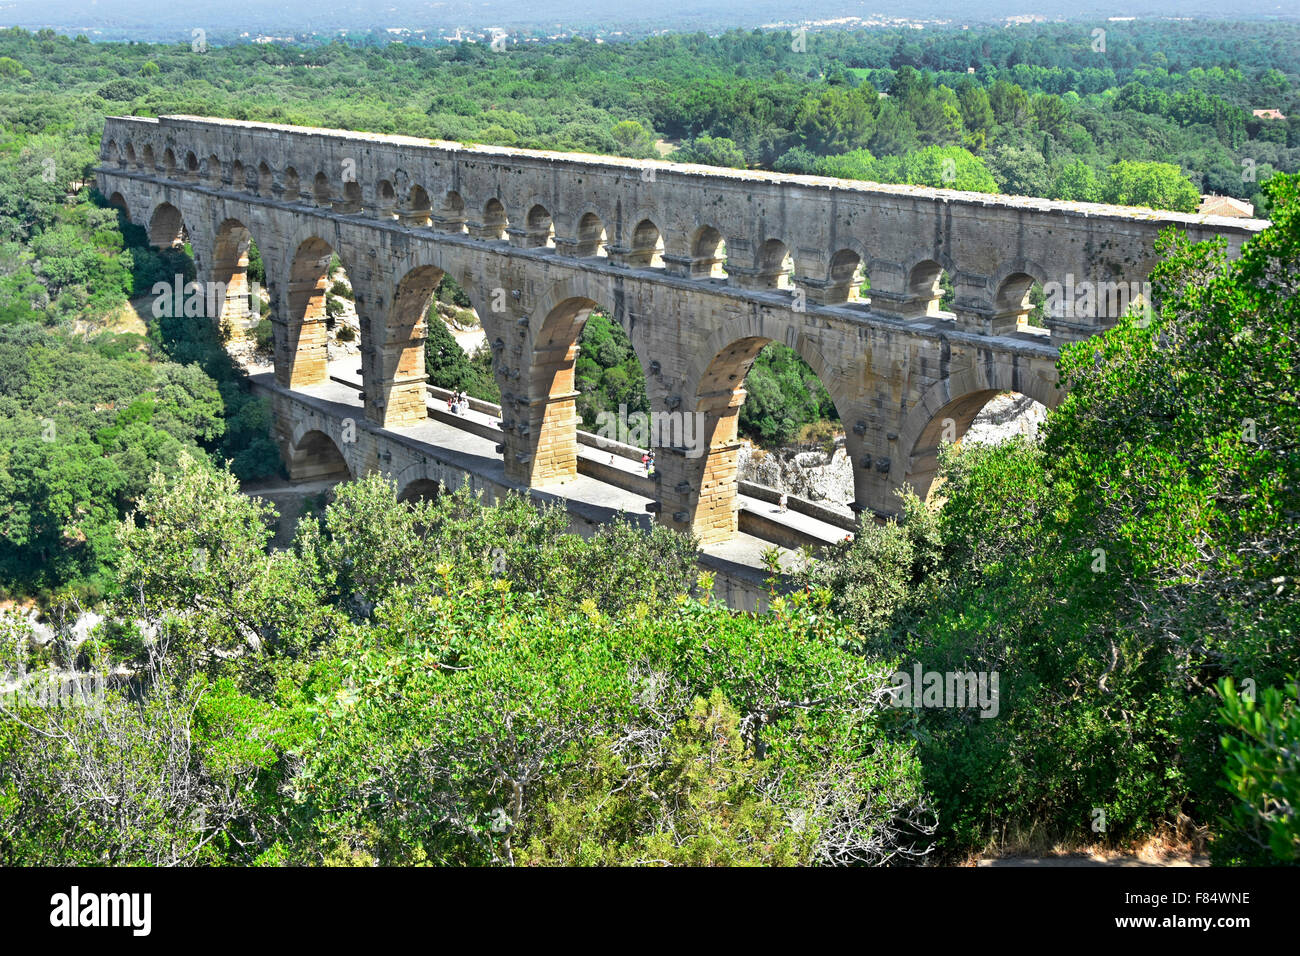 Pont du Gard ancient Roman aqueduct spanning the Gardon River with the adjacent road added alongside Stock Photo